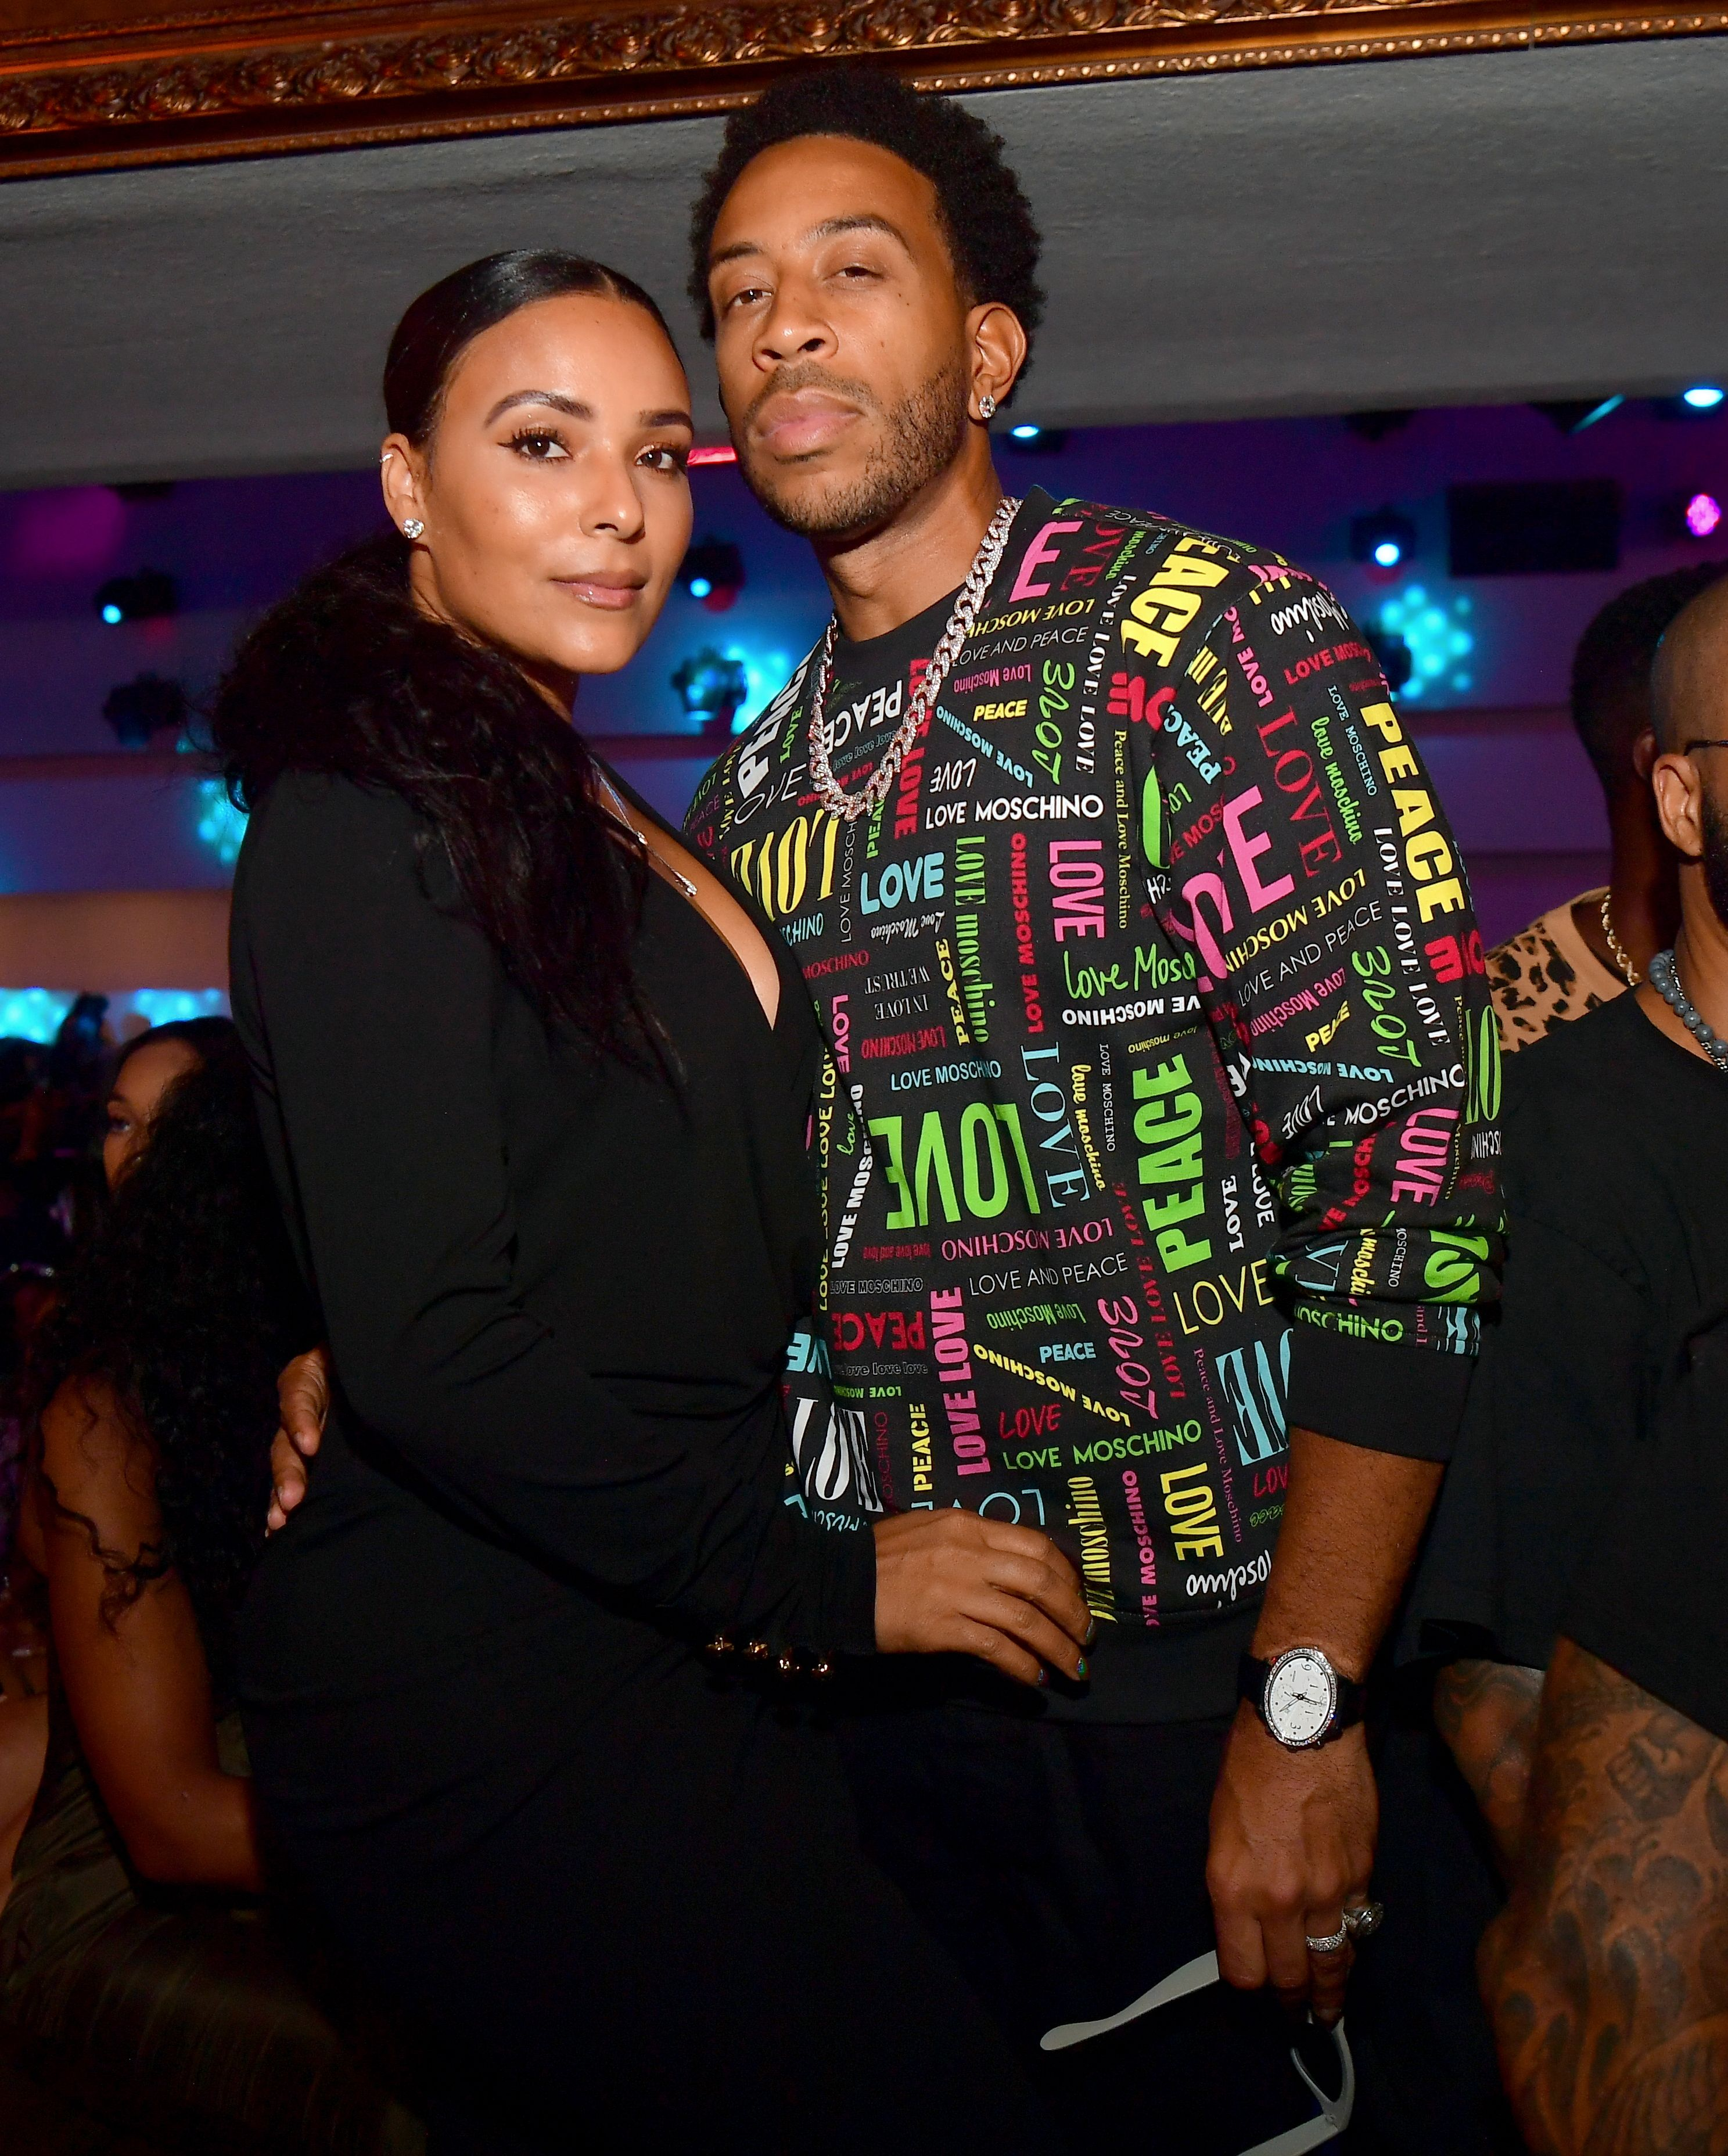 Ludacris and Eudoxie Bridges attend the Jeezy TM-104 album release party in September 2019 | Photo: Getty Images